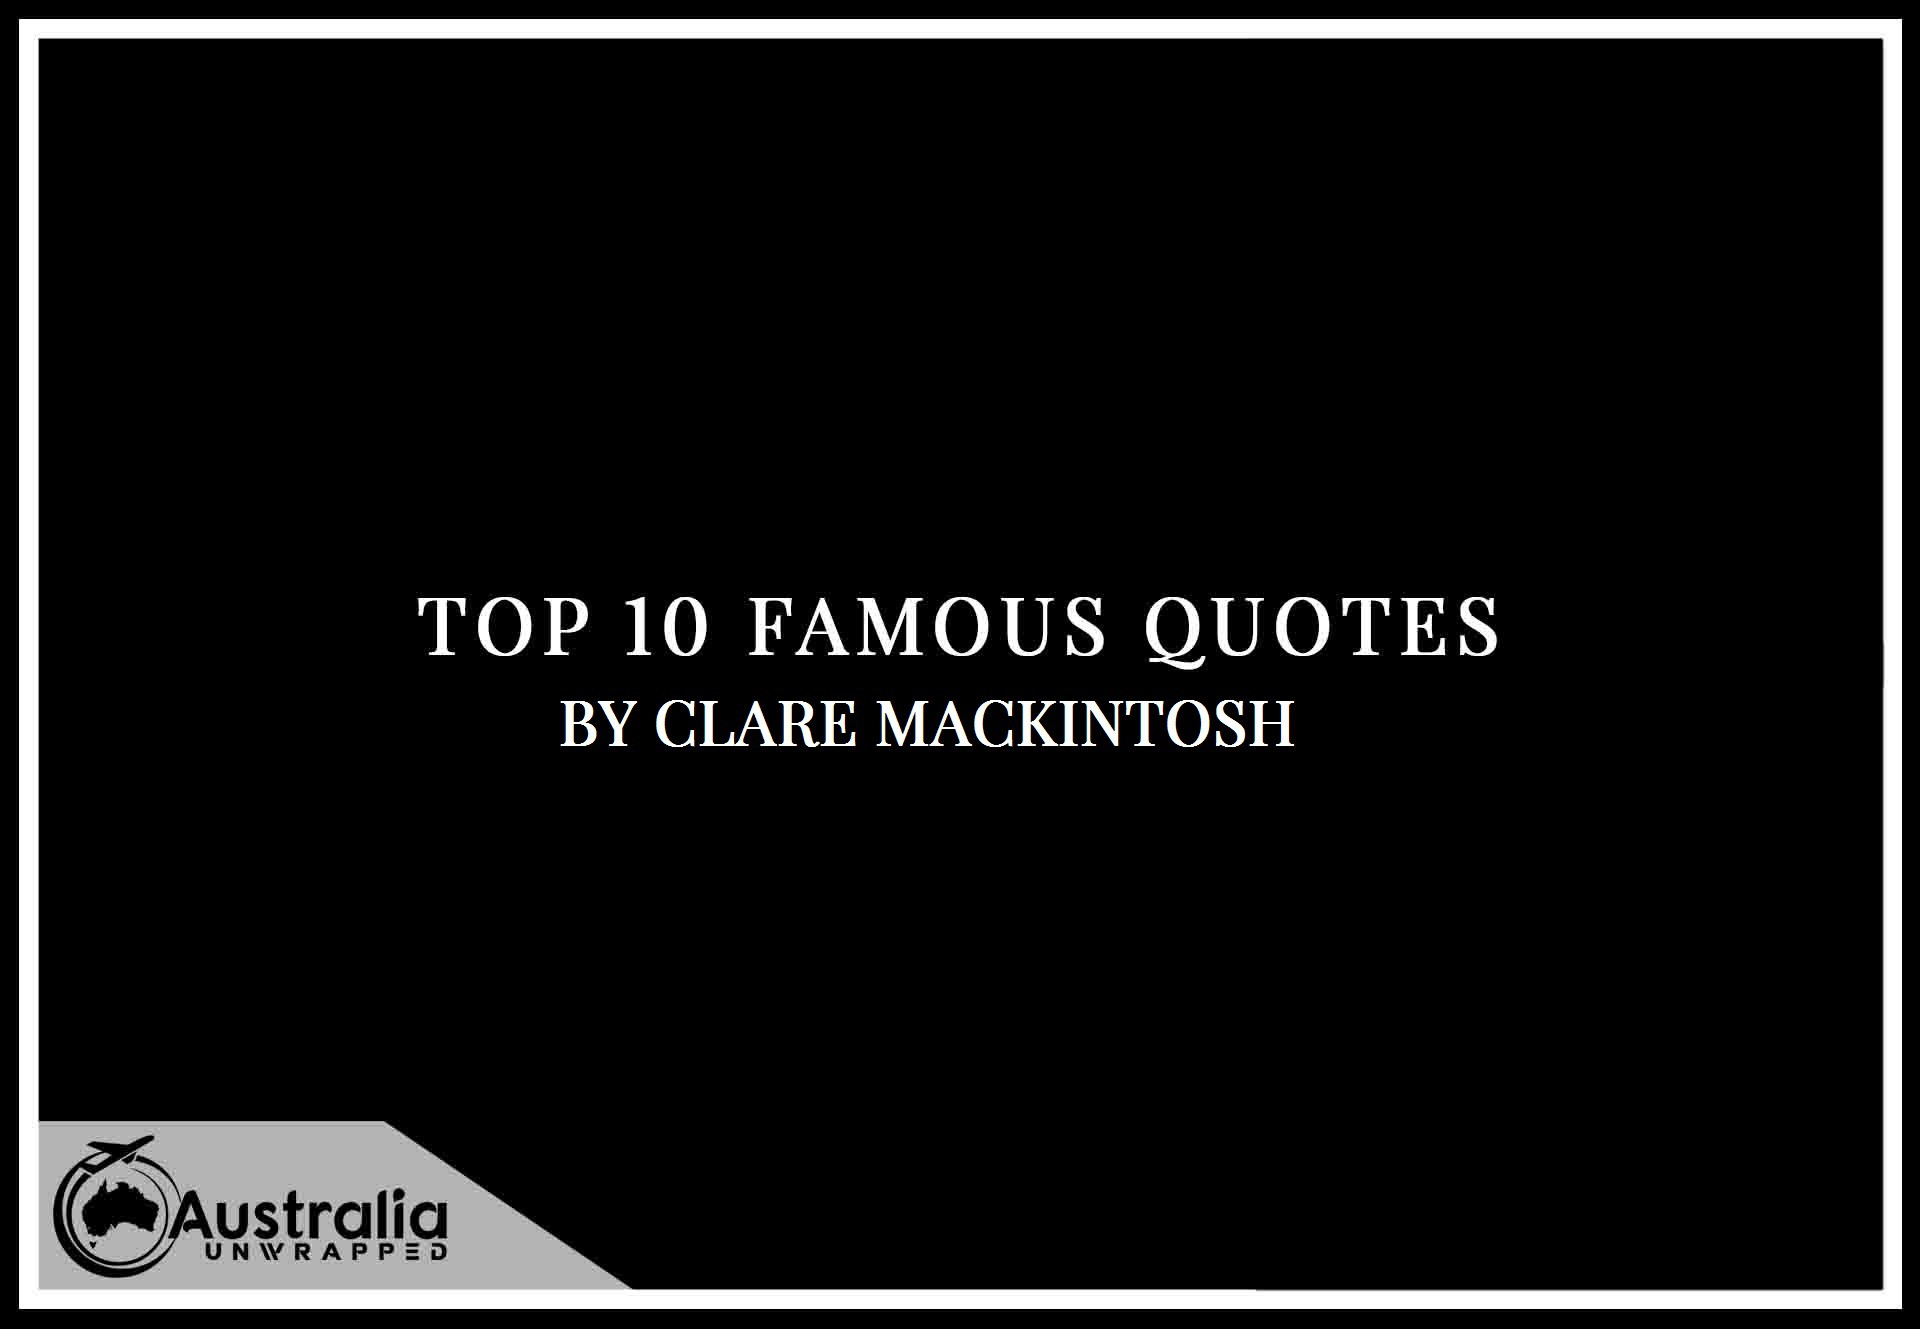 Clare Mackintosh's Top 10 Popular and Famous Quotes